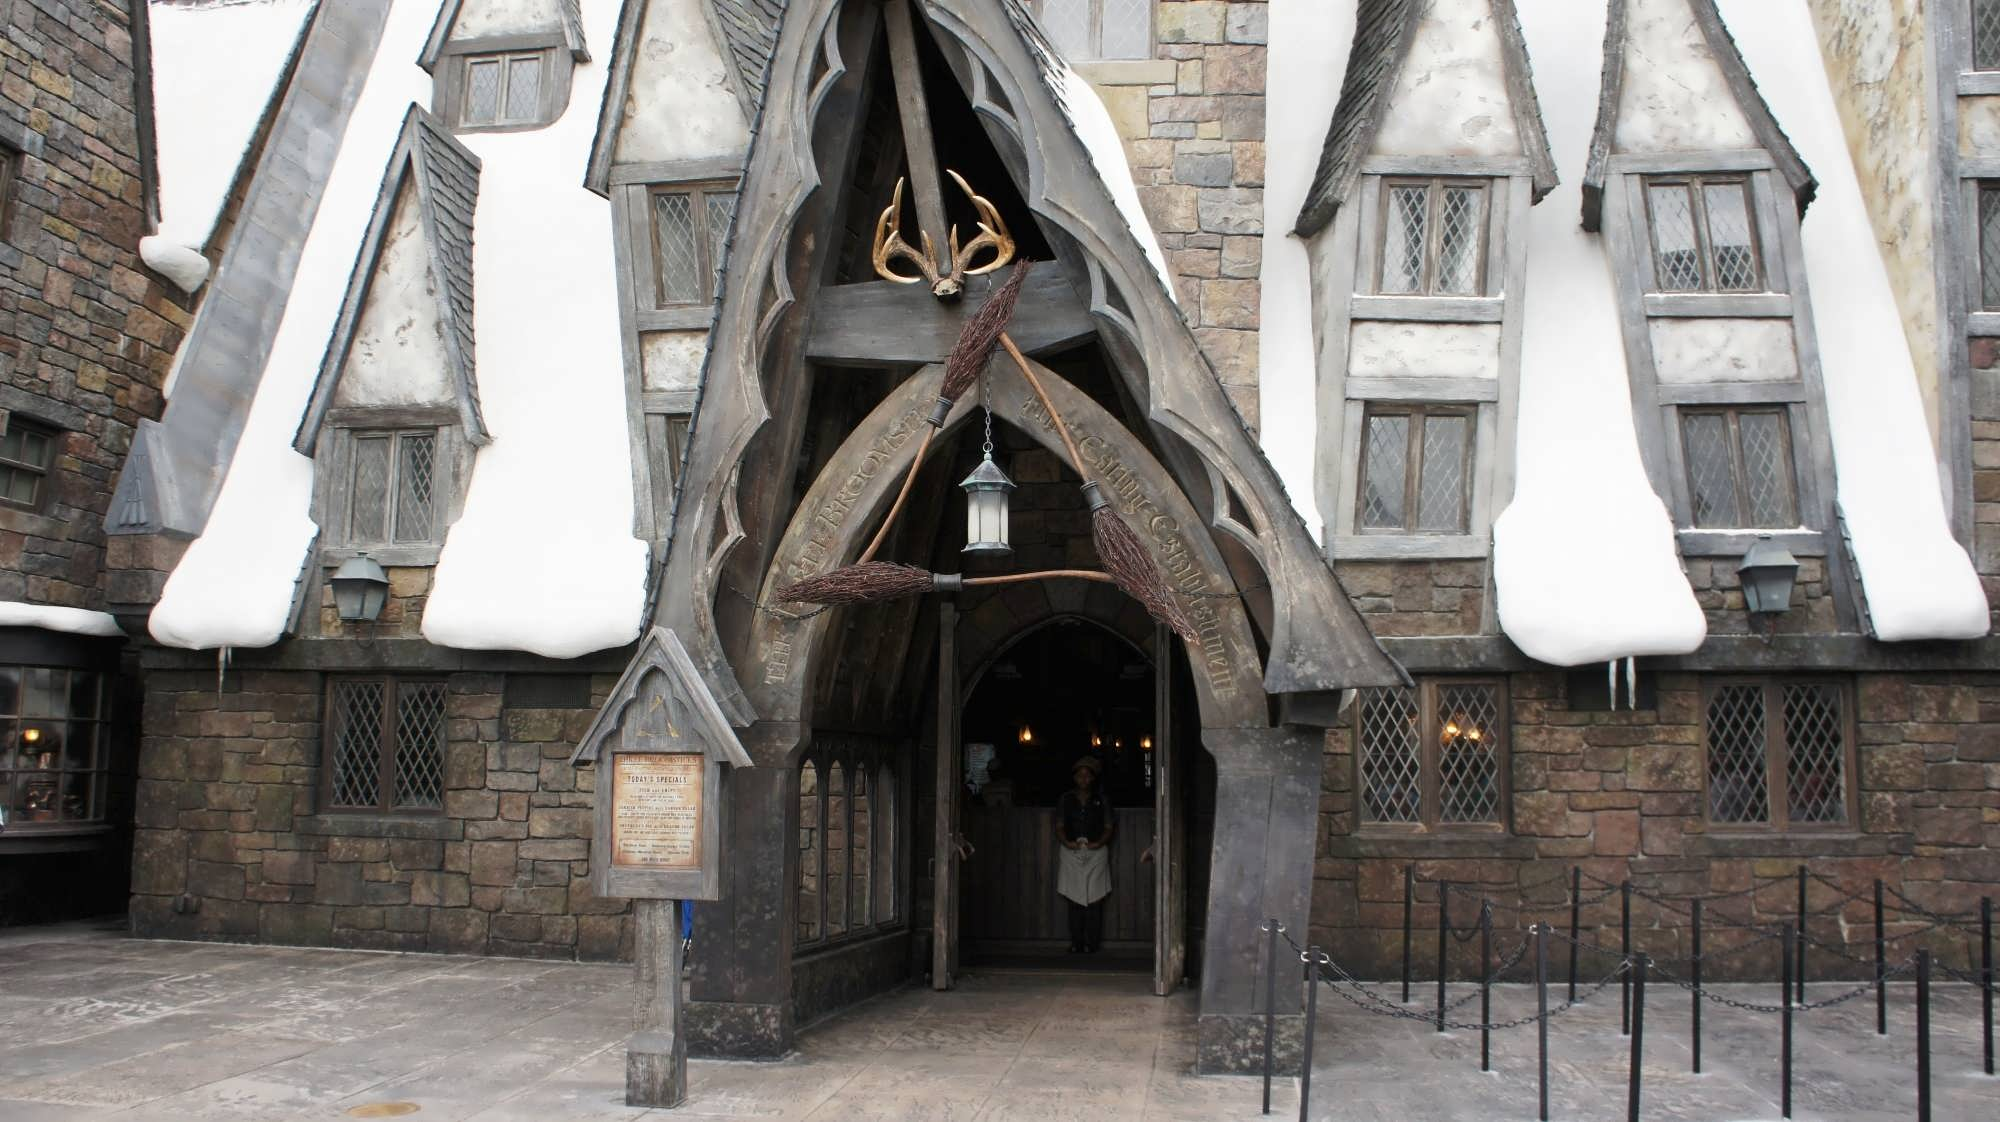 Three Broomsticks at the Wizarding World of Harry Potter – Hogsmeade.